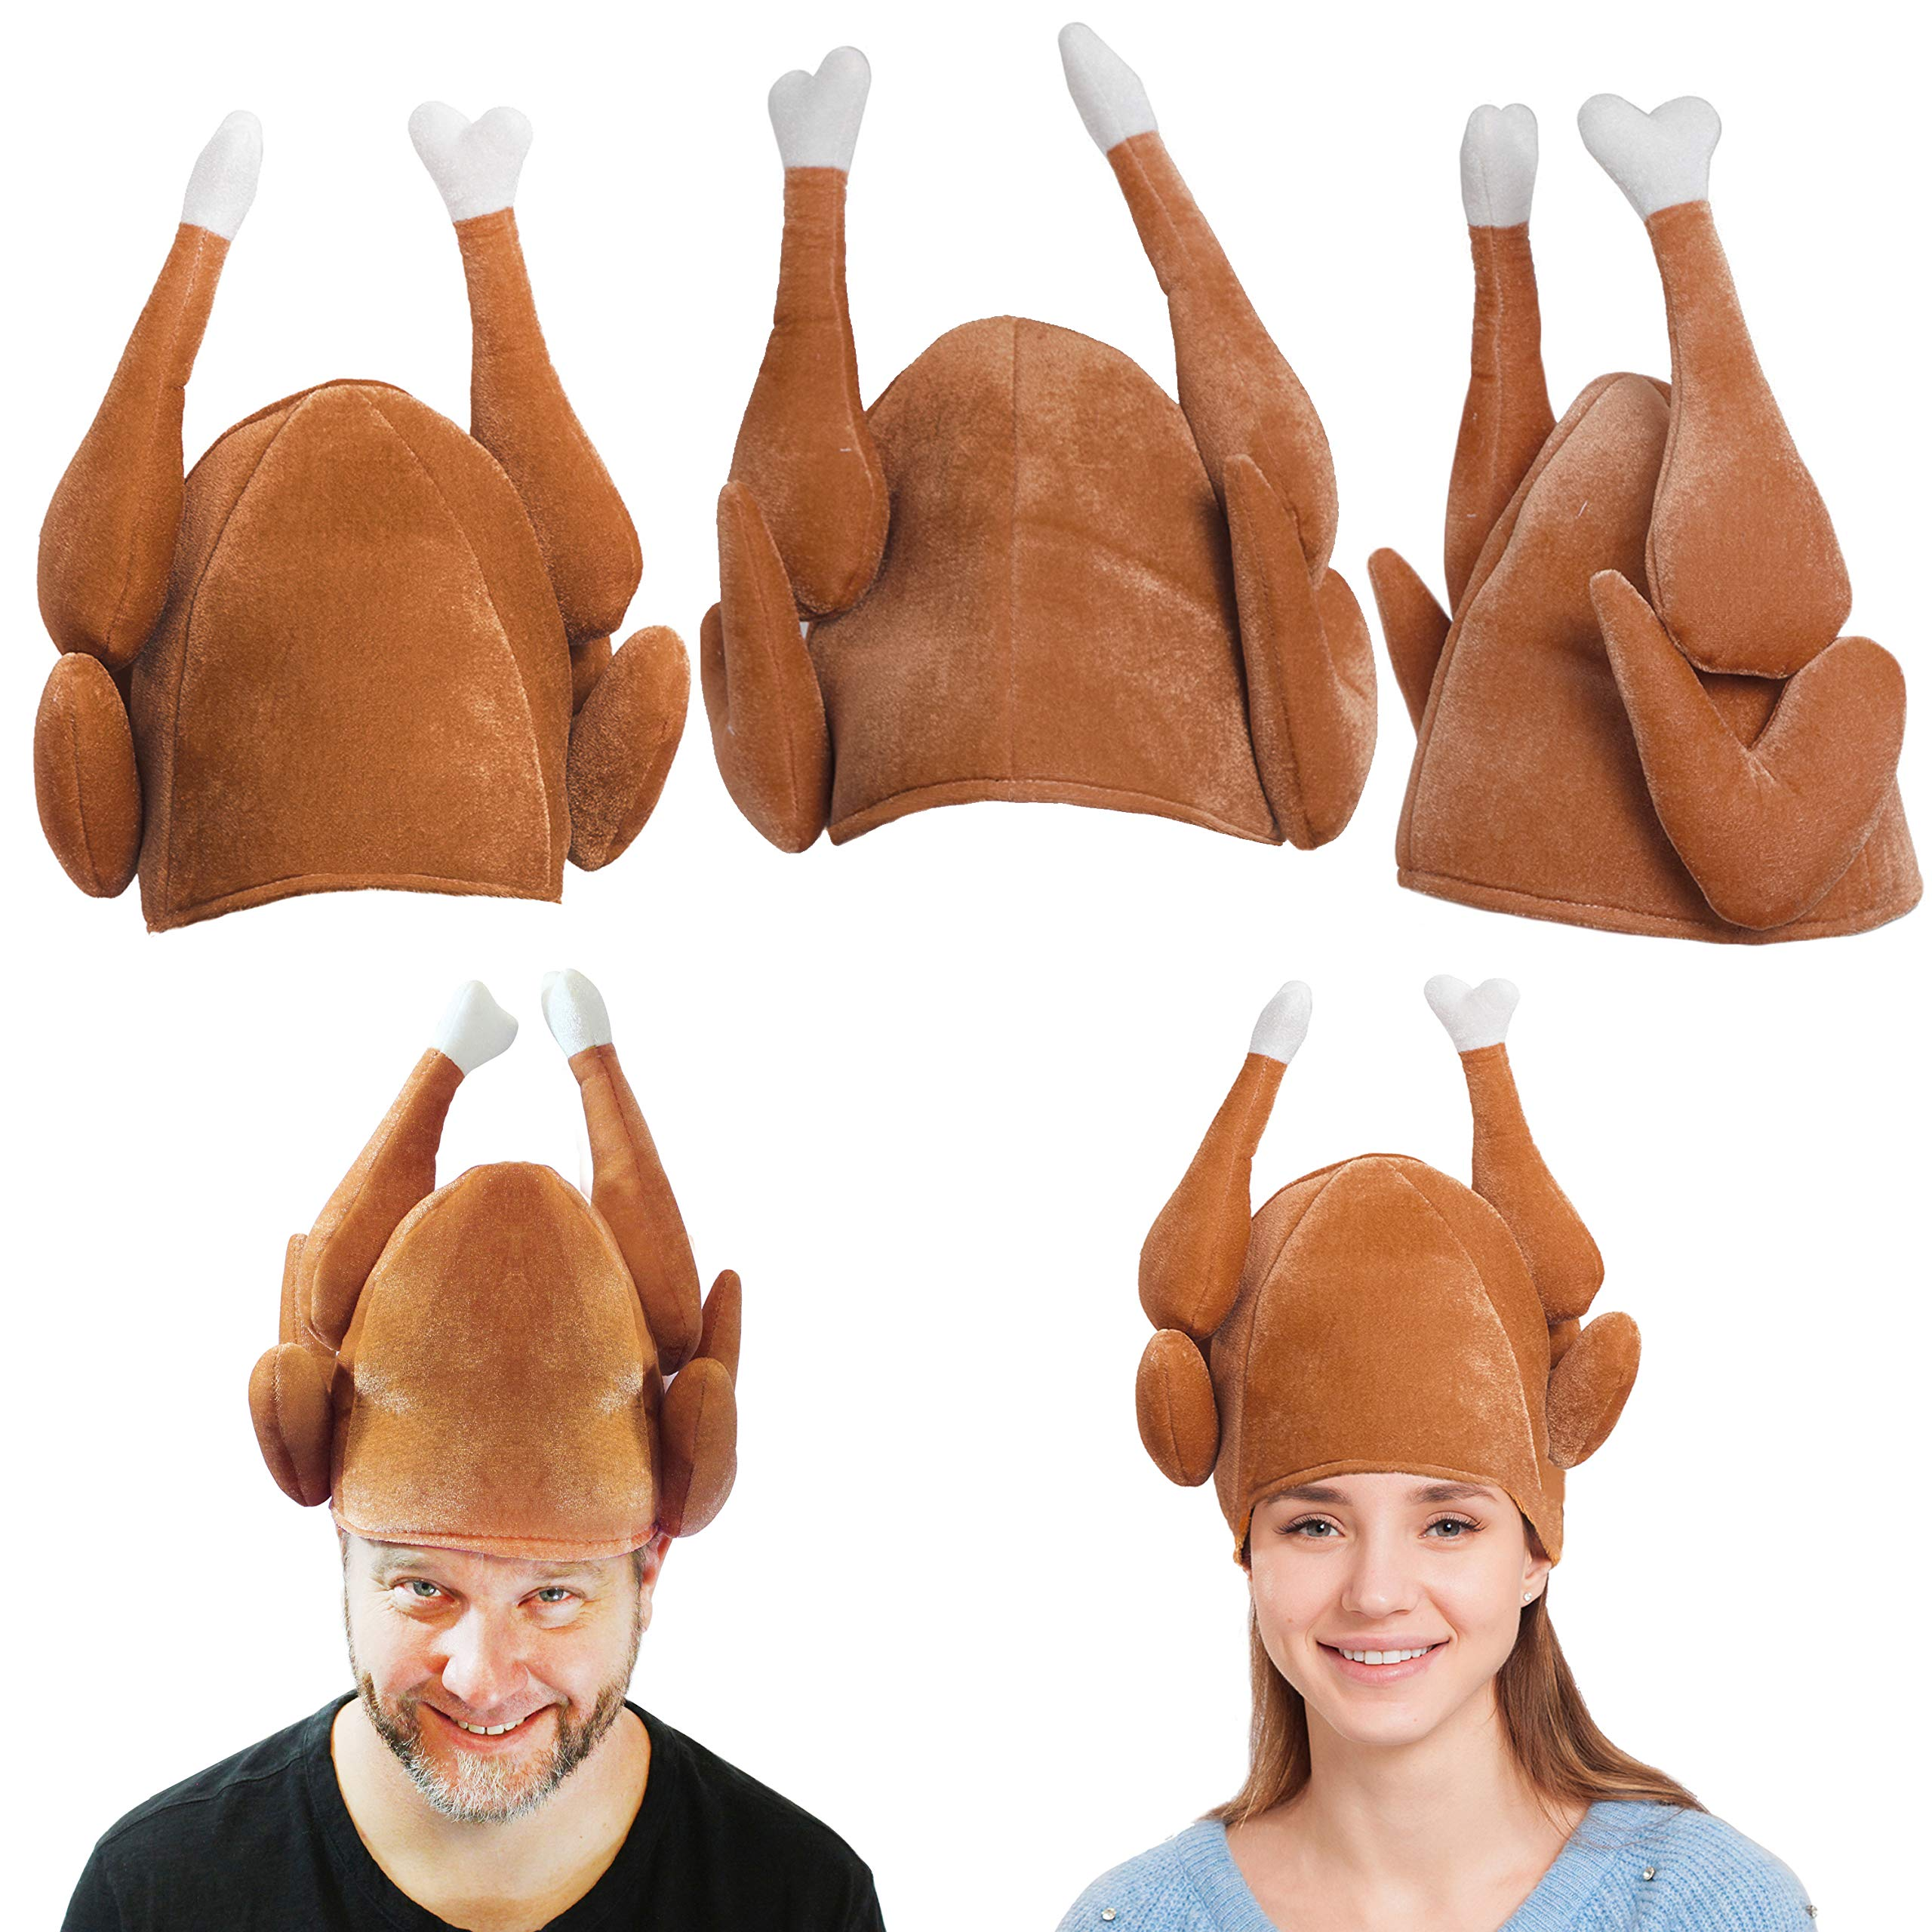 Plush Roasted Turkey Hats 3 Pack for Thanksgiving and Halloween Costume Dress Up Party by Spooktacular Creations